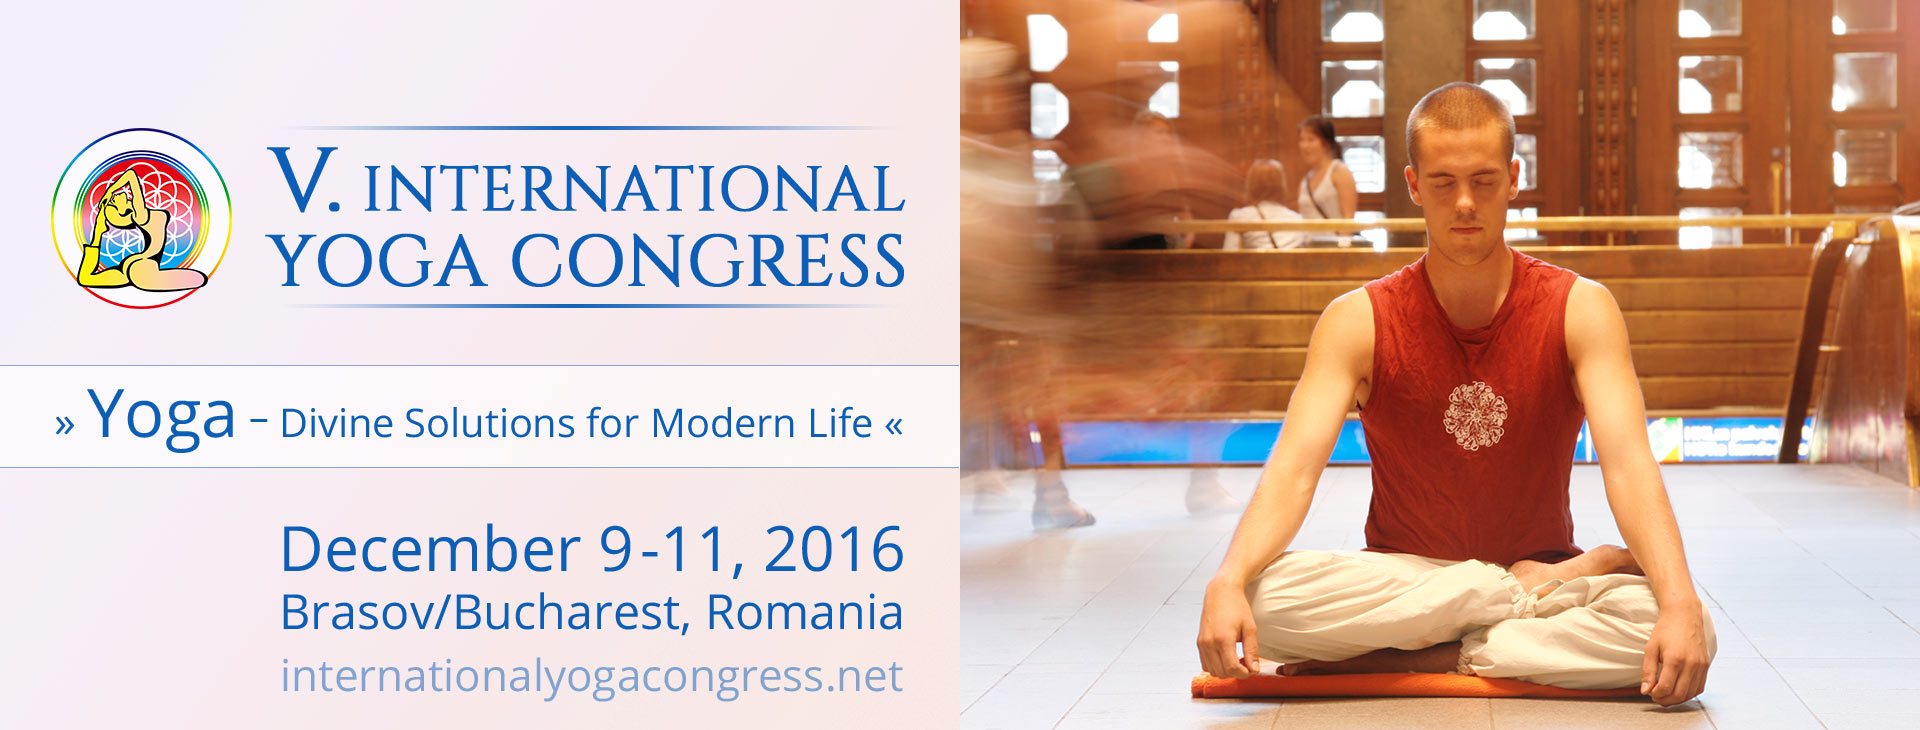 yoga-congress-2016-banner-02